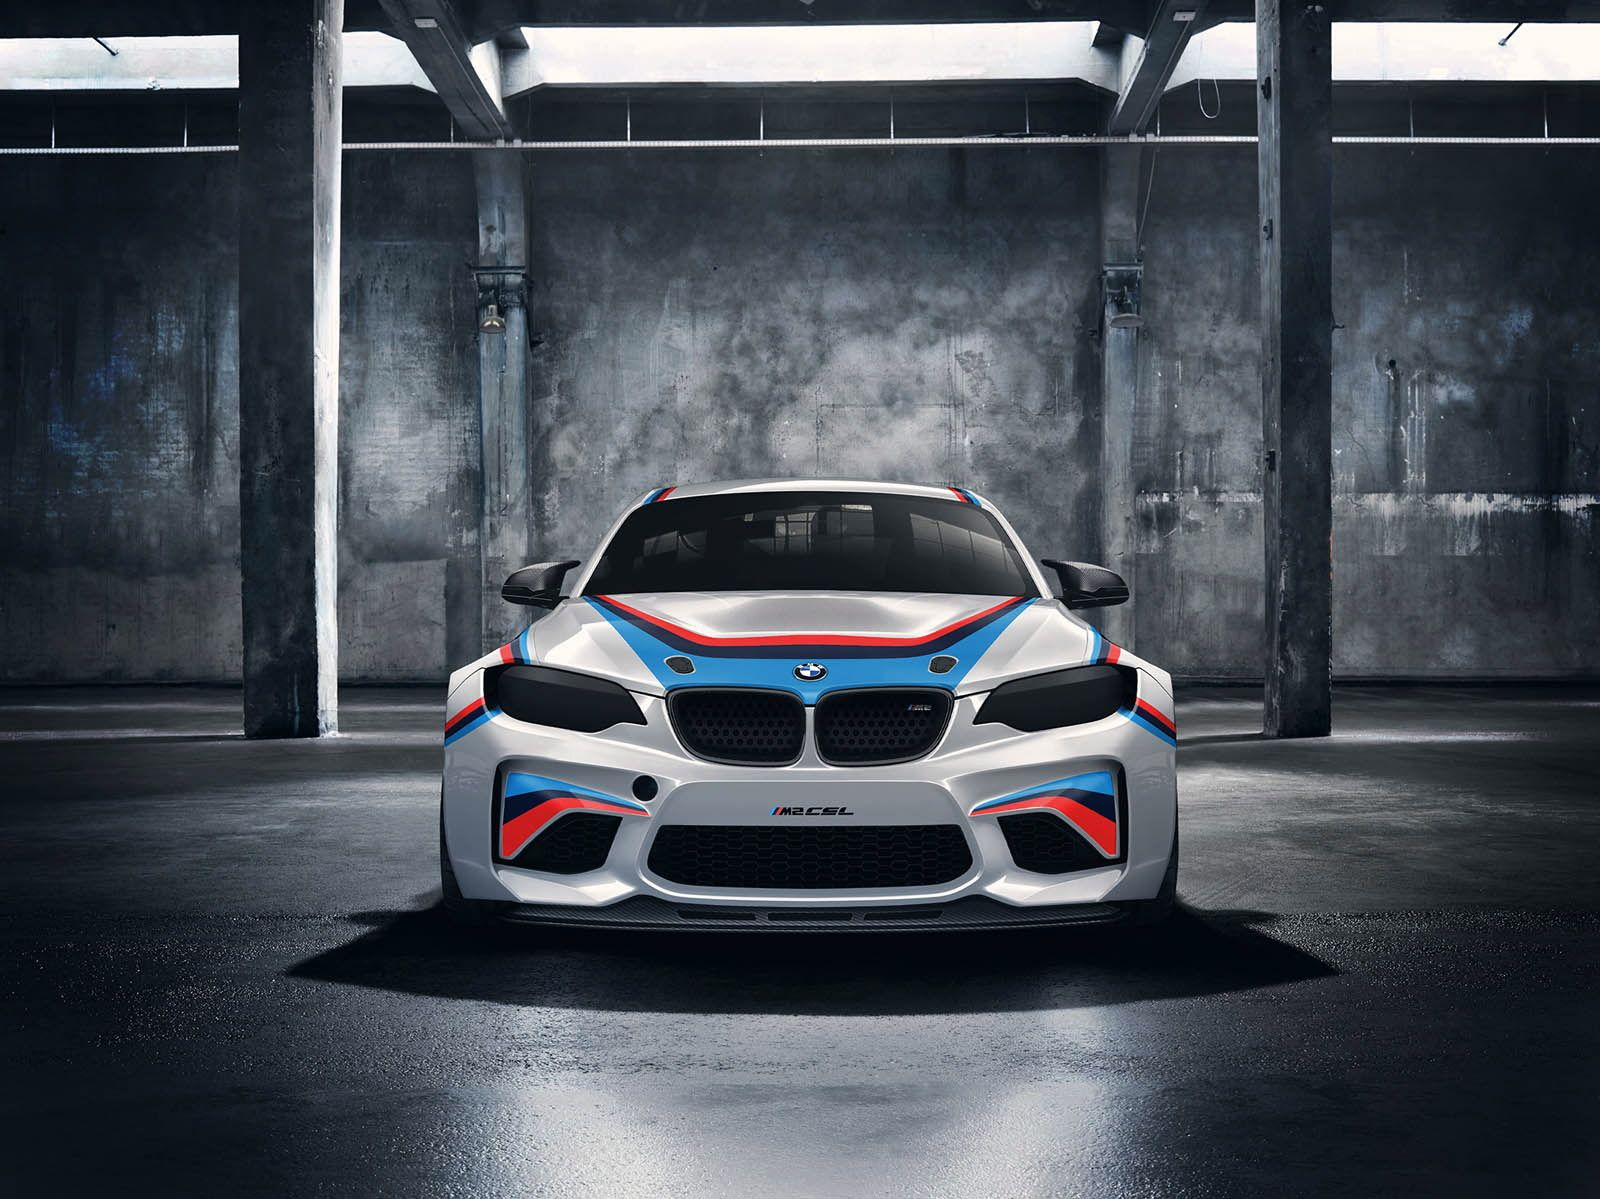 Spied Possible Bmw M2 Cs Csl Caught At The Nurburgring Bmw M2 Bmw Bmw Cars